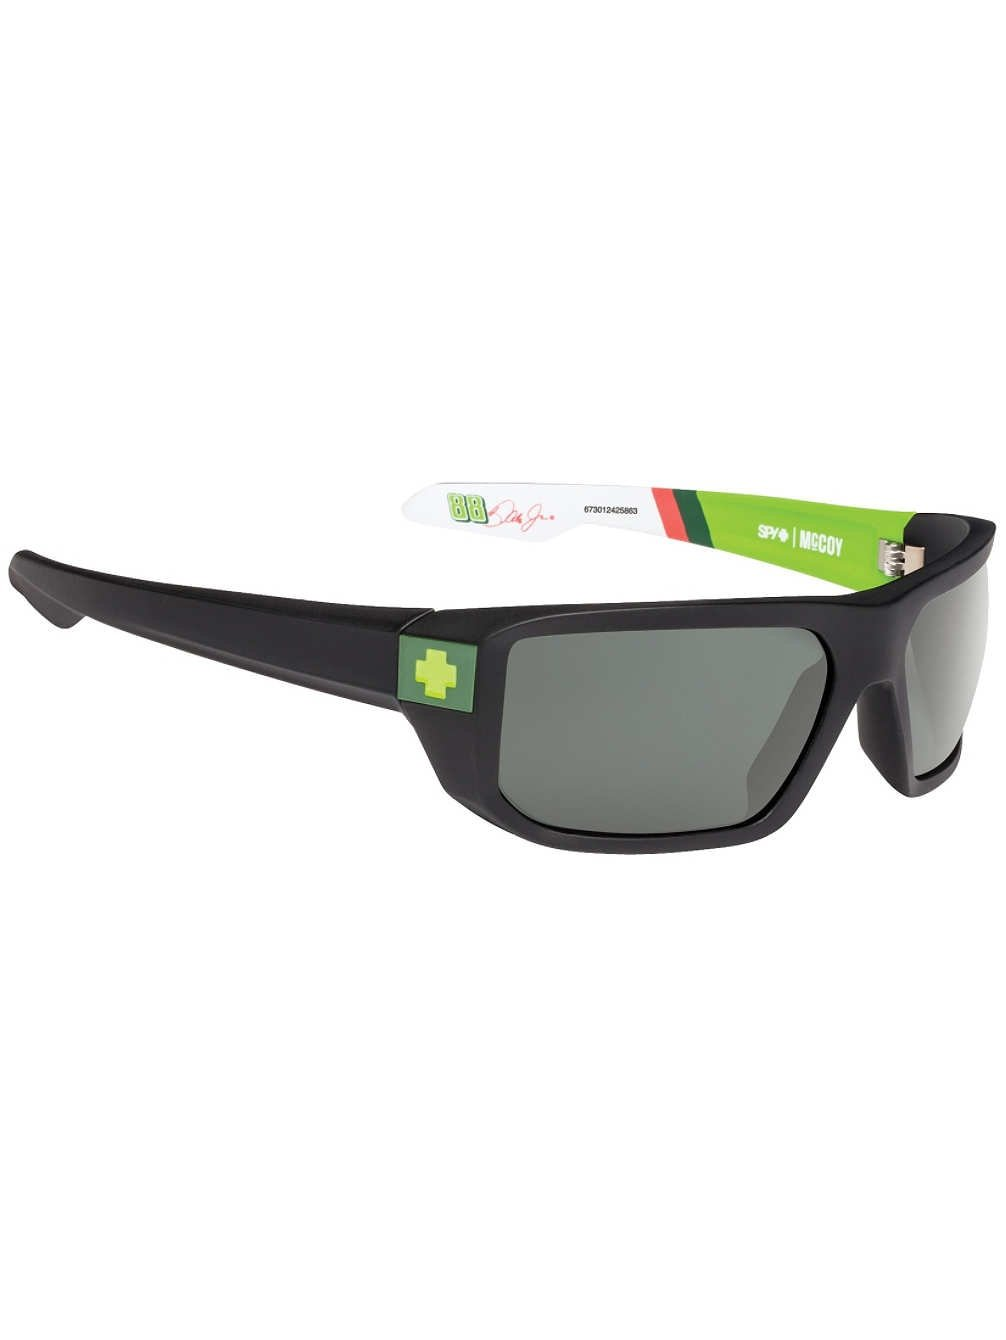 Spy Optic Men's Mccoy Rectangular Sunglasses, Diet Dew Livery/Happy Gray/Green, 63 mm